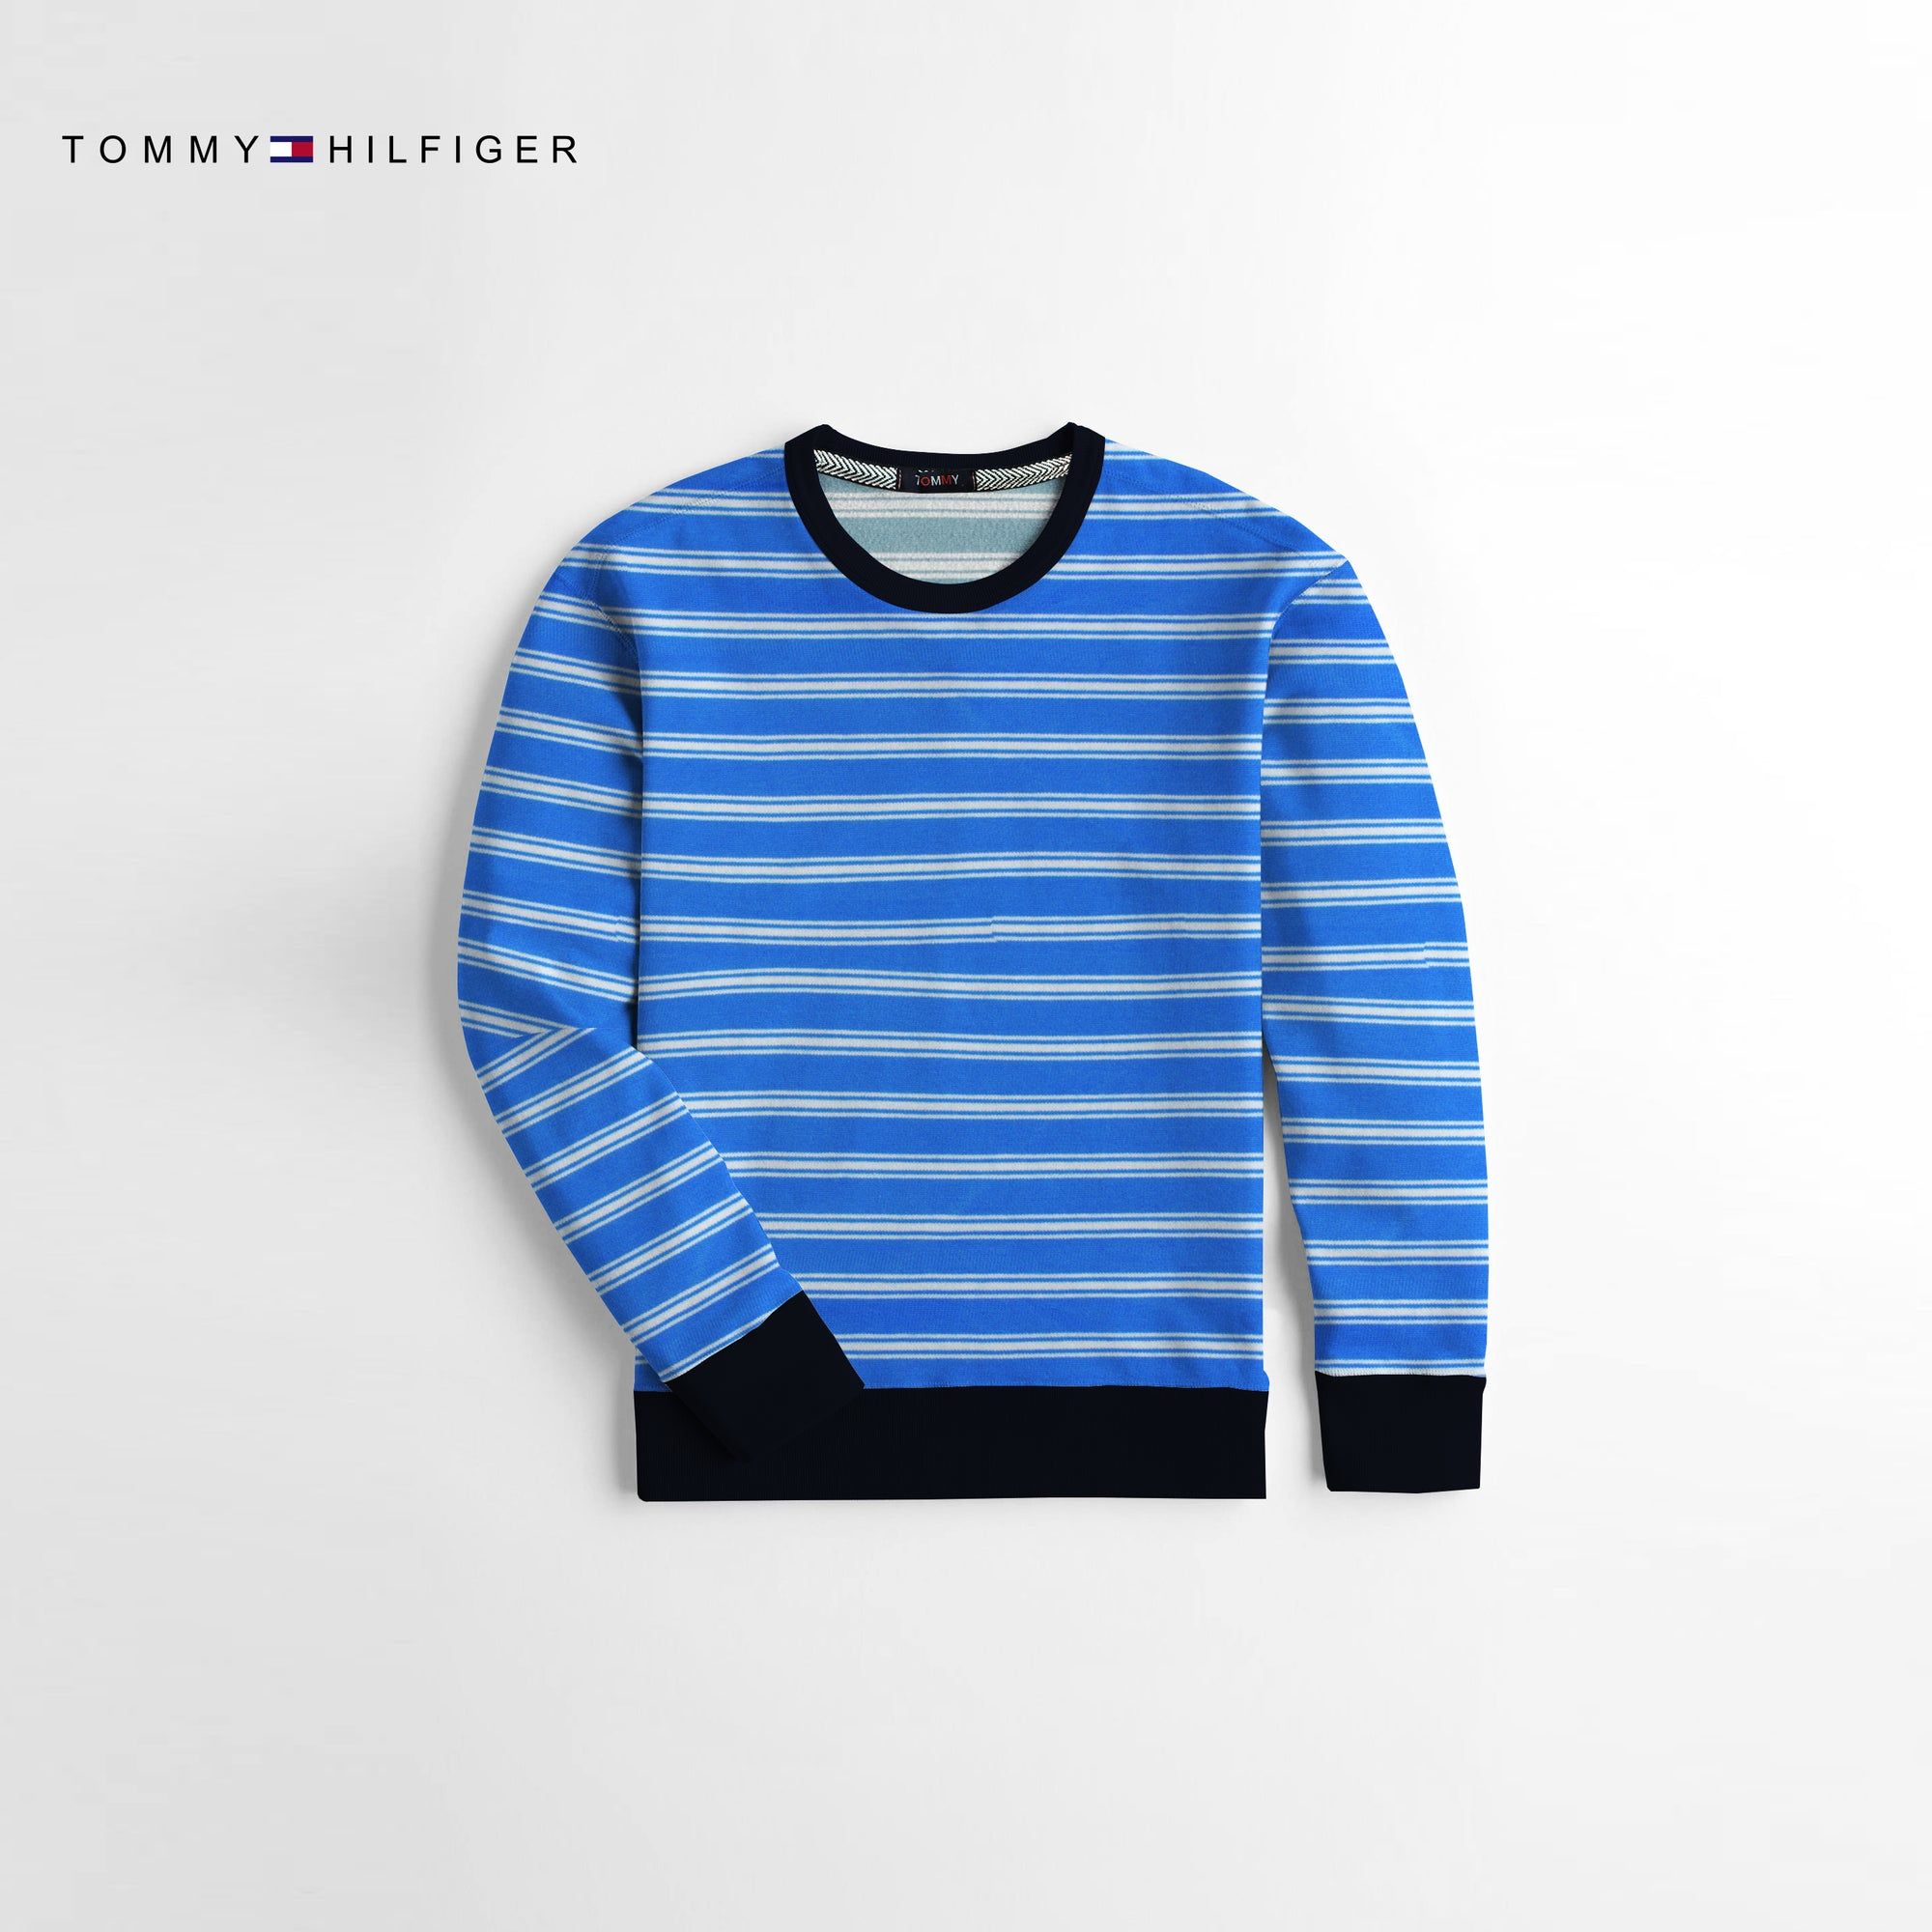 Tommy Hilfiger Crew Neck Terry Fleece Sweatshirt For Kids-White & Blue-NA10678